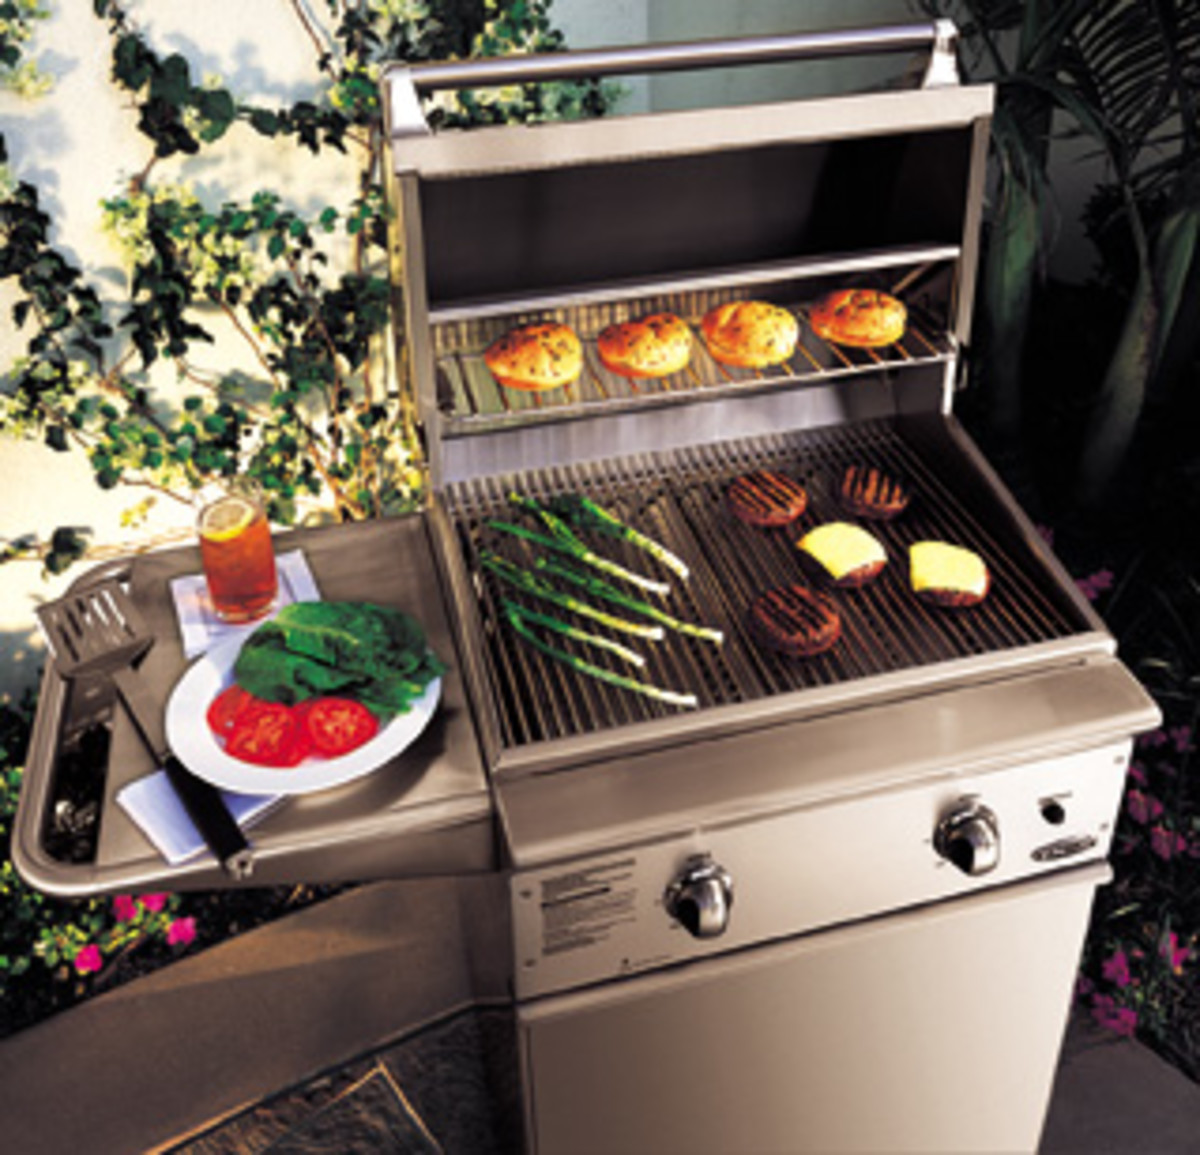 DCS 26 inch grills were discontinued years ago as not profitable for the newly purchased company.  Models are still in wide use and replacement parts readily available.